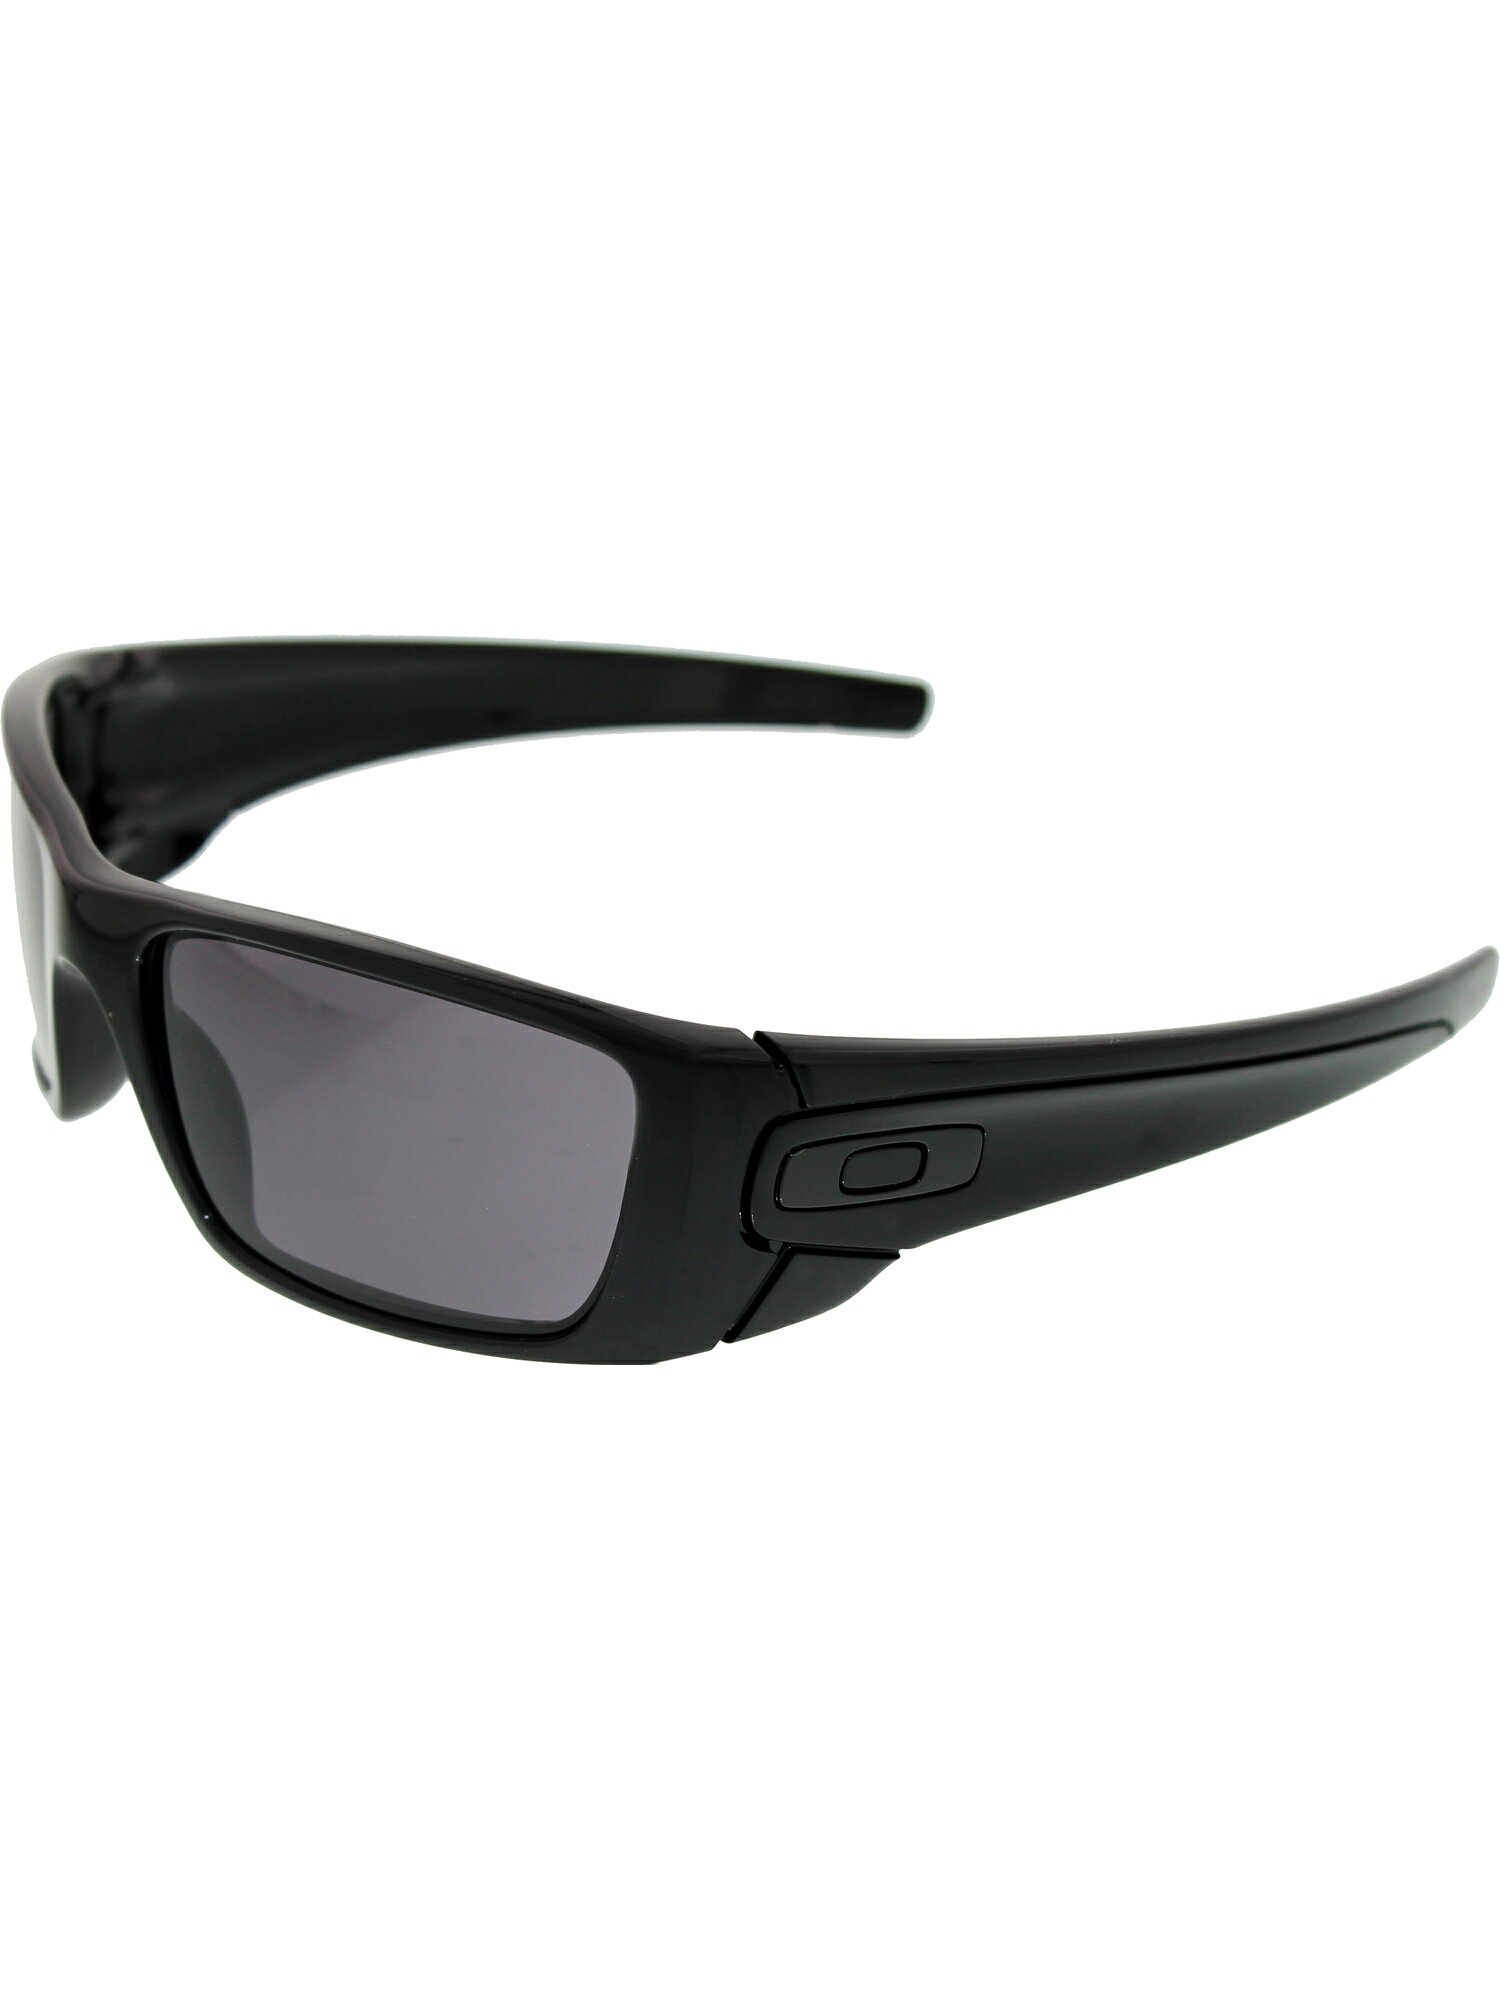 Oakley Mens Fuel Cell Sunglasses